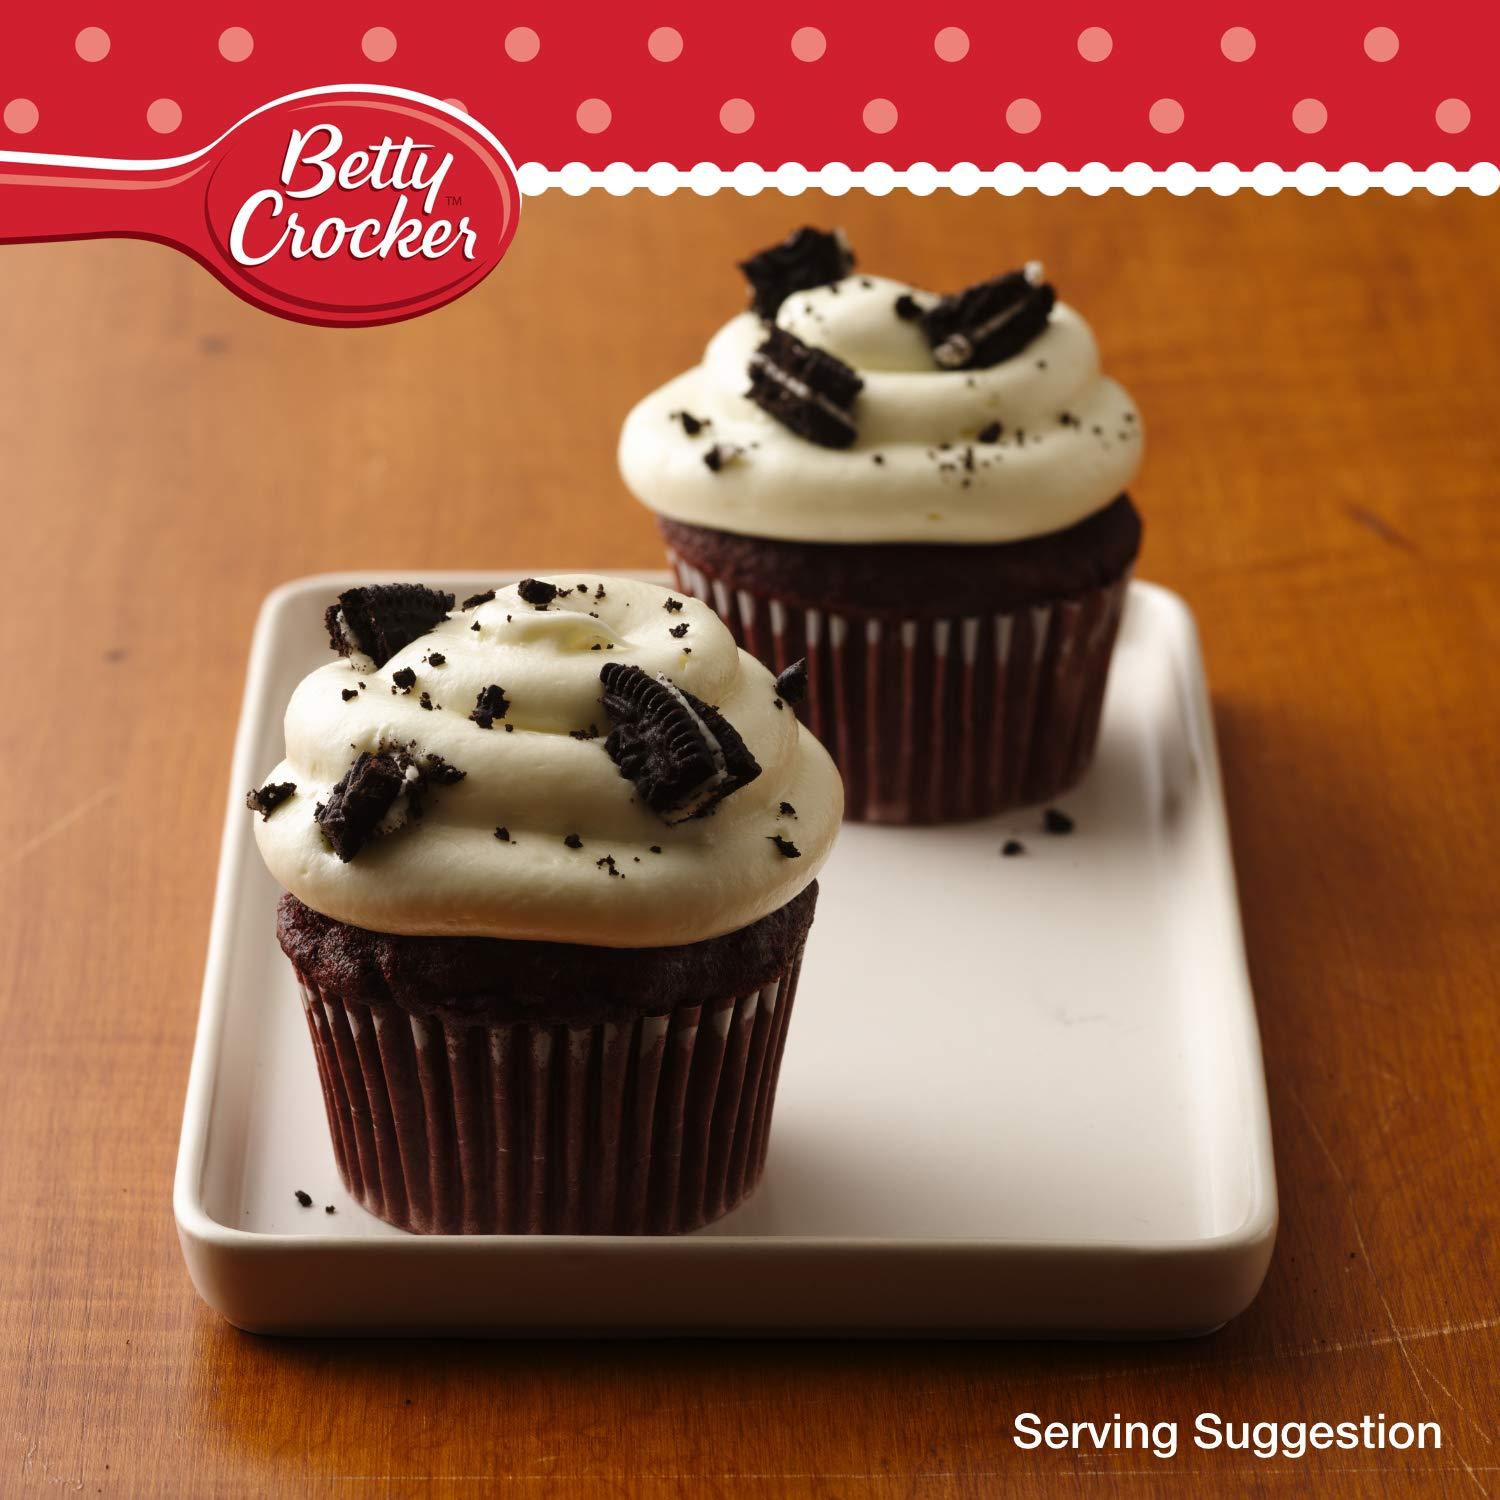 Betty Crocker, Cobertura para repostería - 2 de 400 gr. (Total 800 gr.): Amazon.es: Alimentación y bebidas